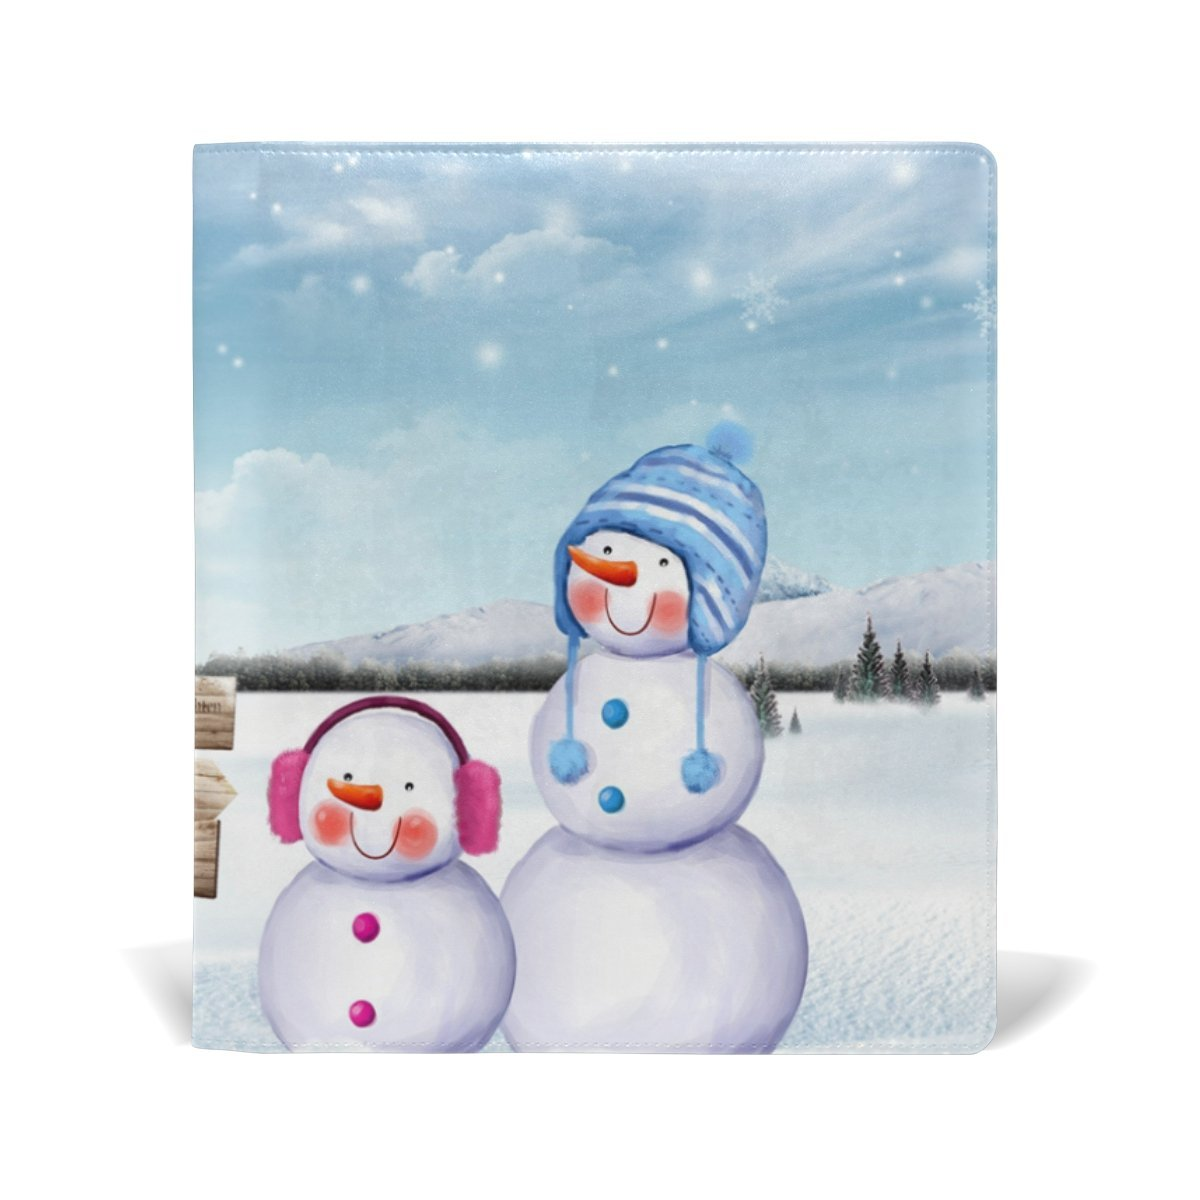 Sunlome Winter Christmas Snowman With Gift Pattern Stretchable PU Leather Book Cover 9 x 11 Inches Fits for School Hardcover Textbooks